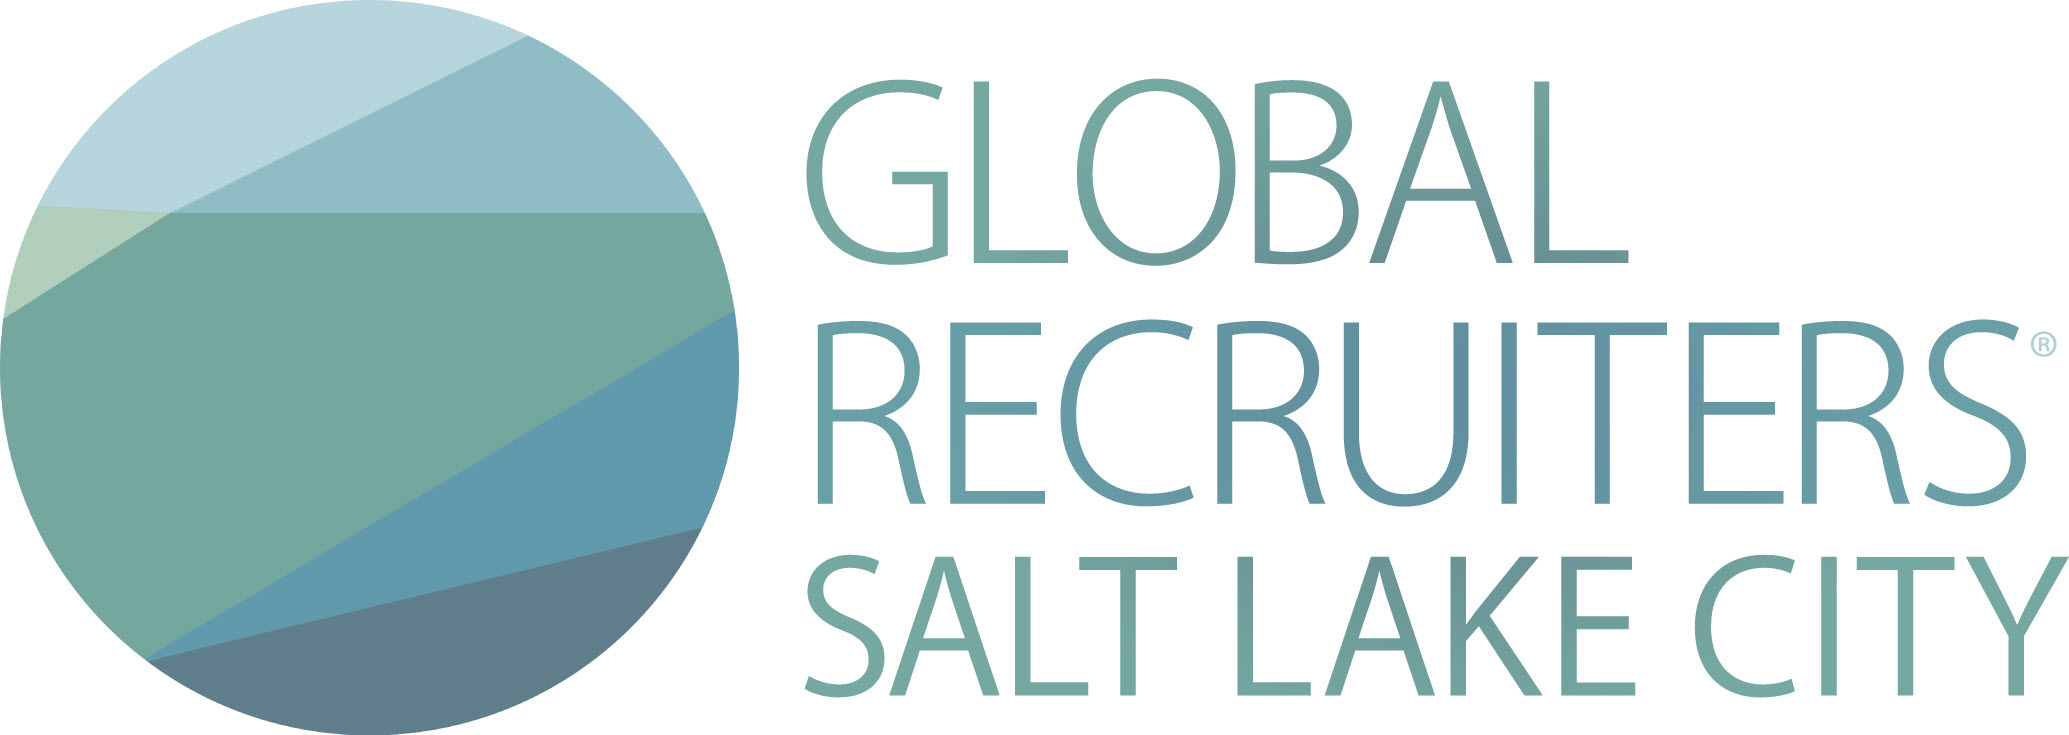 Global Recruiters of Salt Lake City